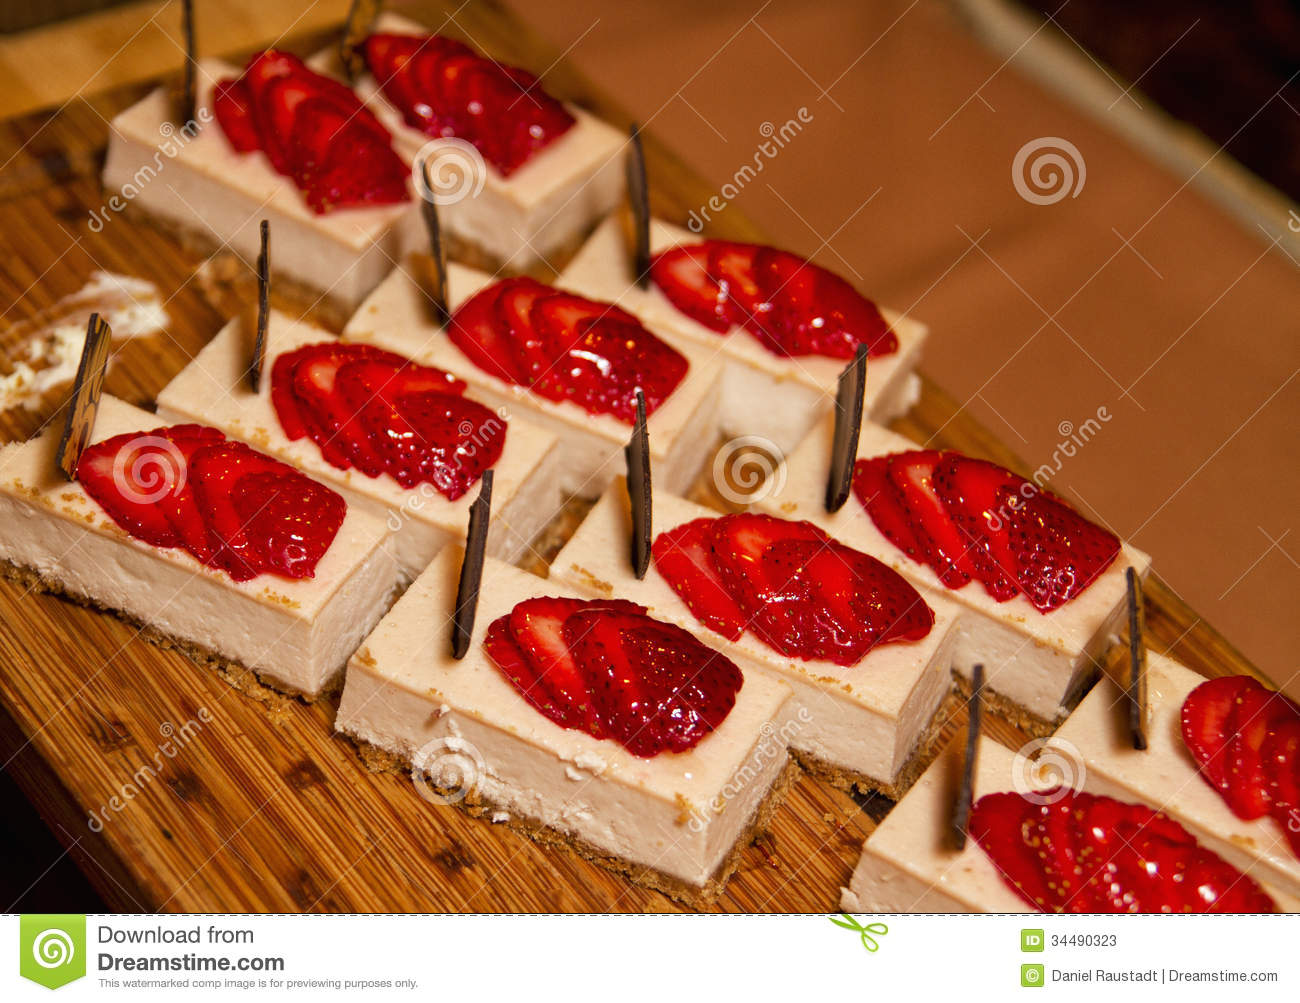 Decorated squares of fresh and fancy cheesecake desserts.